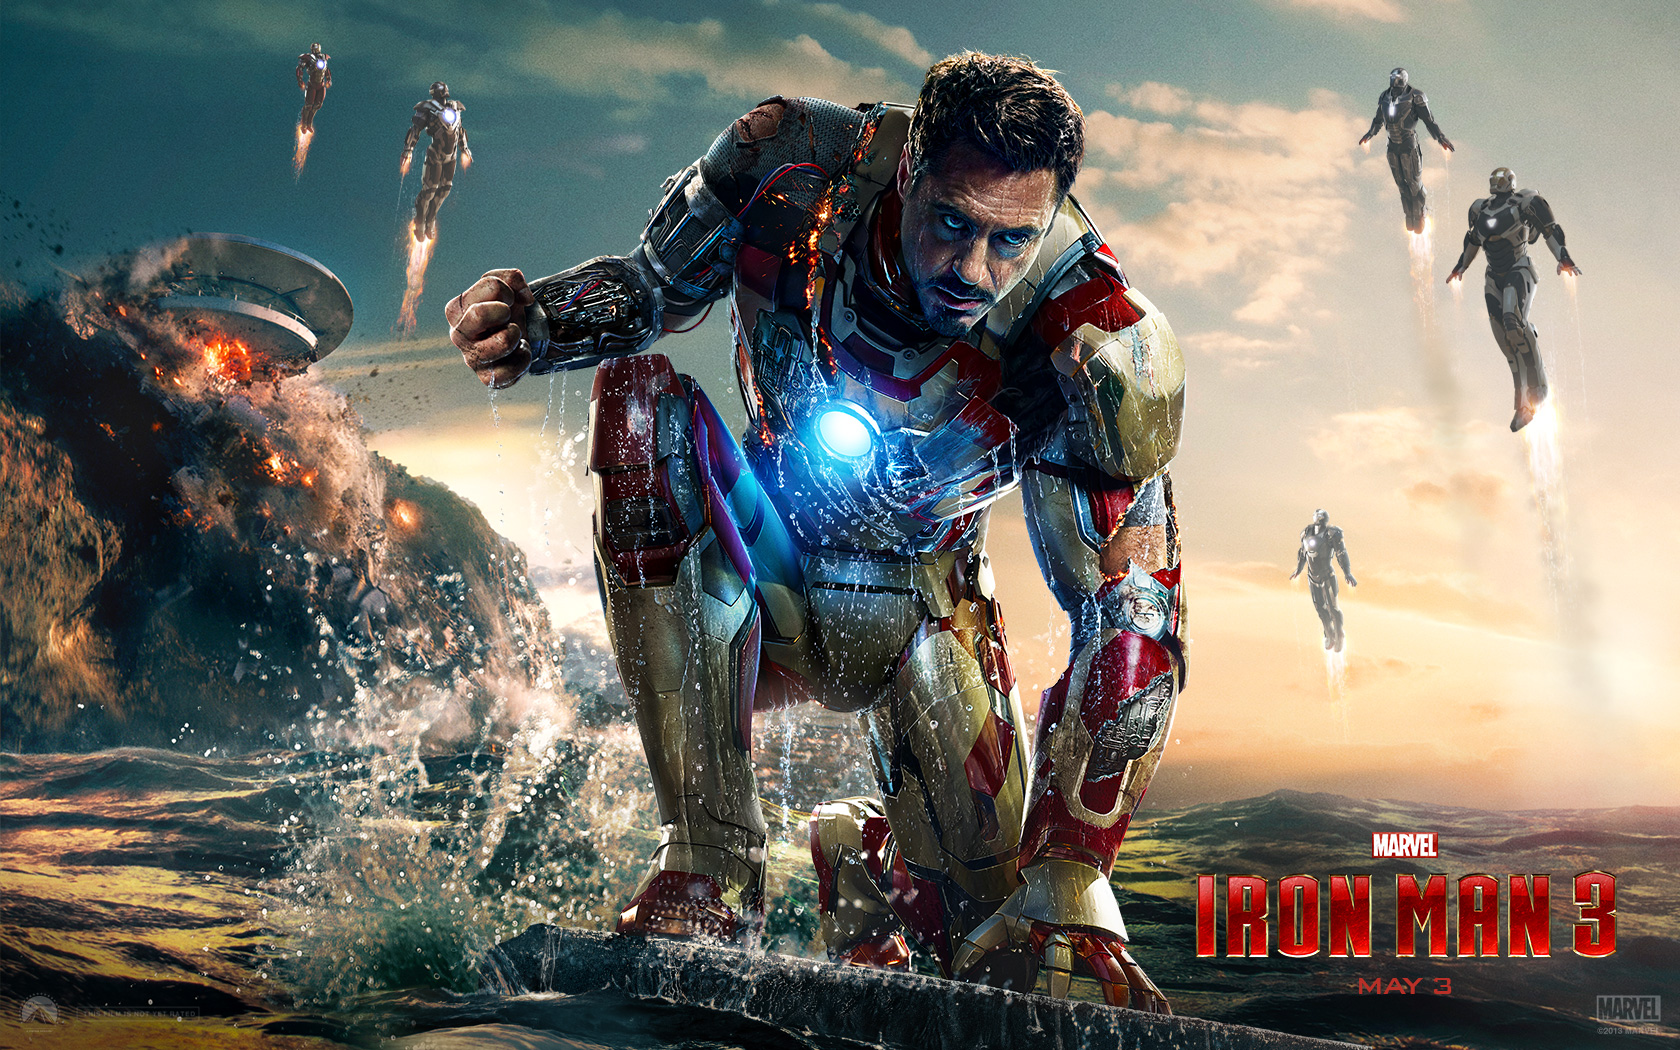 Iron Man 3 Hd Wallpapers High Resolution All Hd Wallpapers